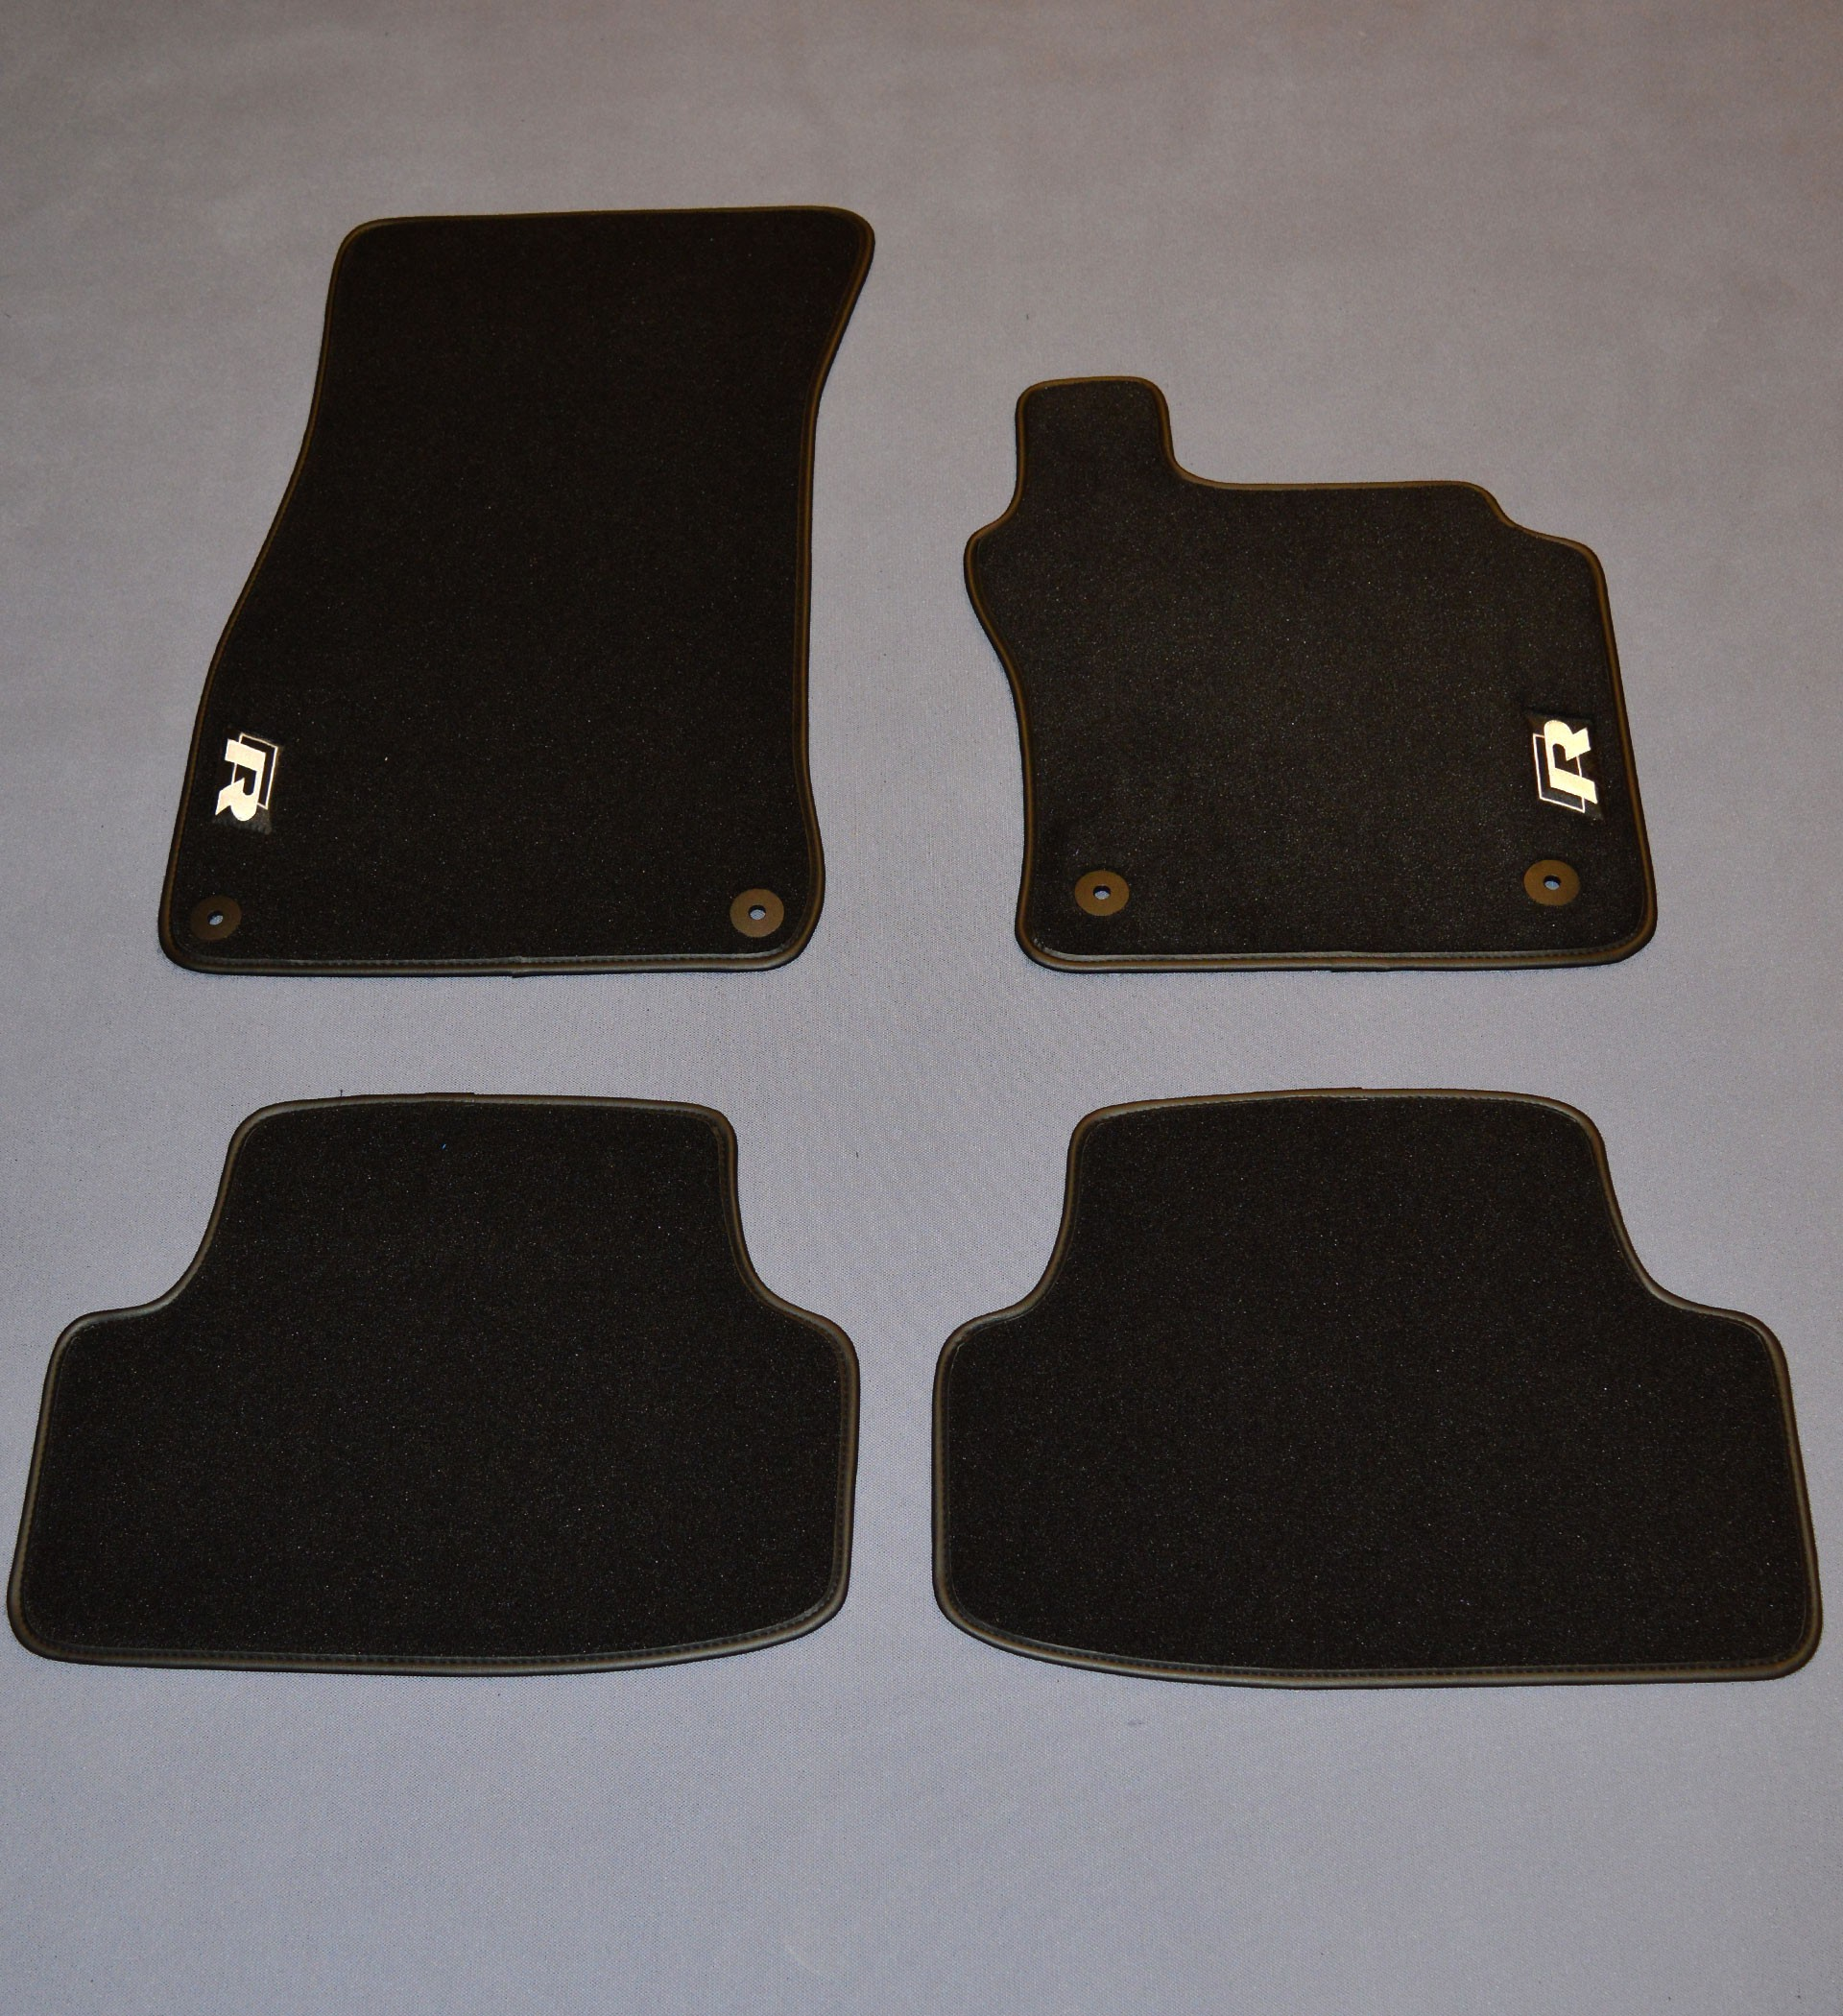 Volkswagen Vw Golf R Mk7 Tailored Luxury Car Floor Mats